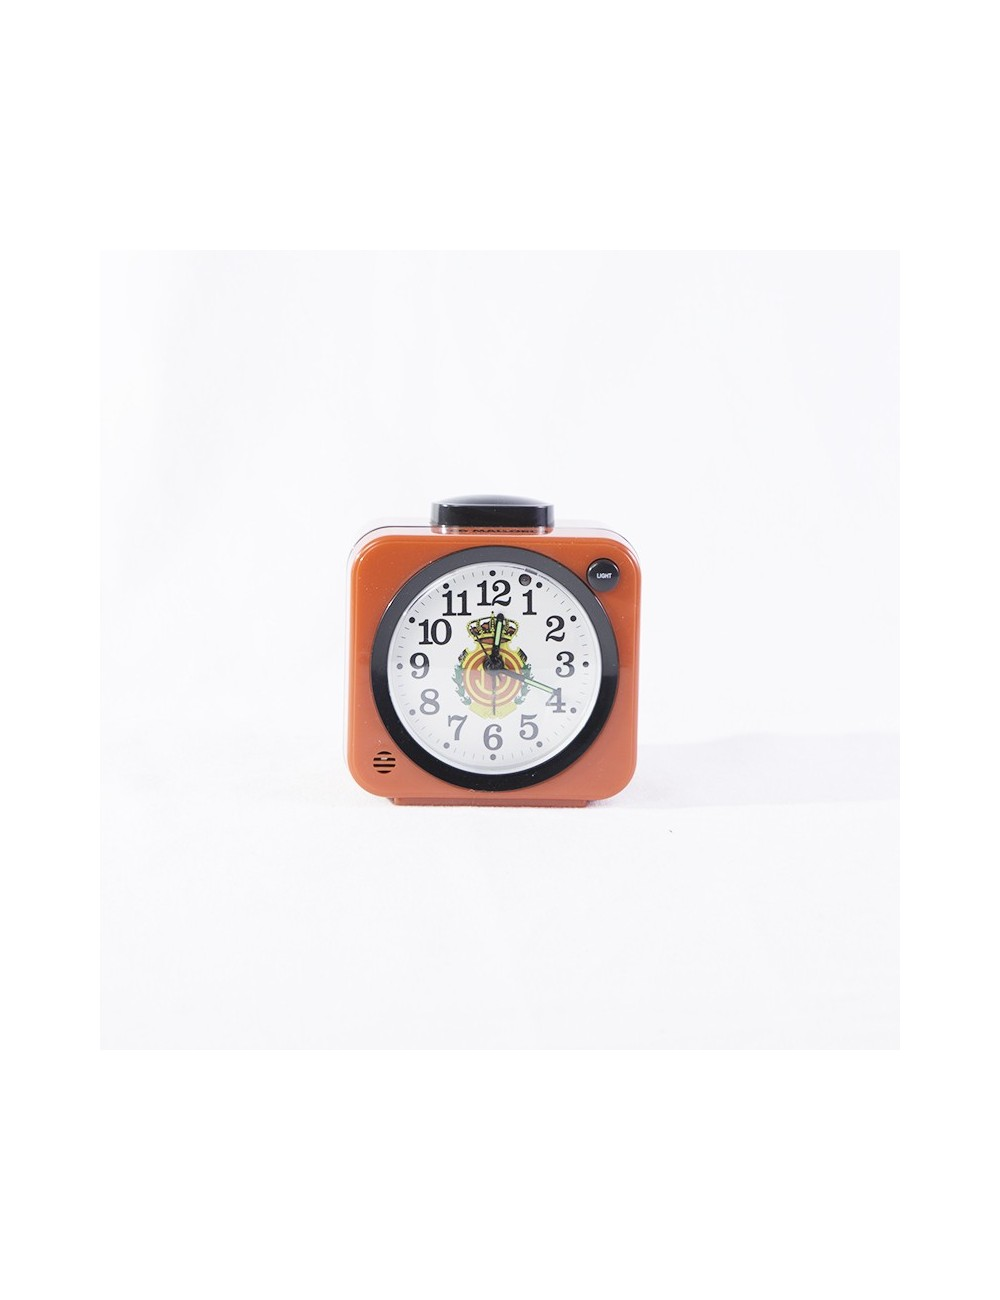 Analog Alarm Clock with the club crest in the center